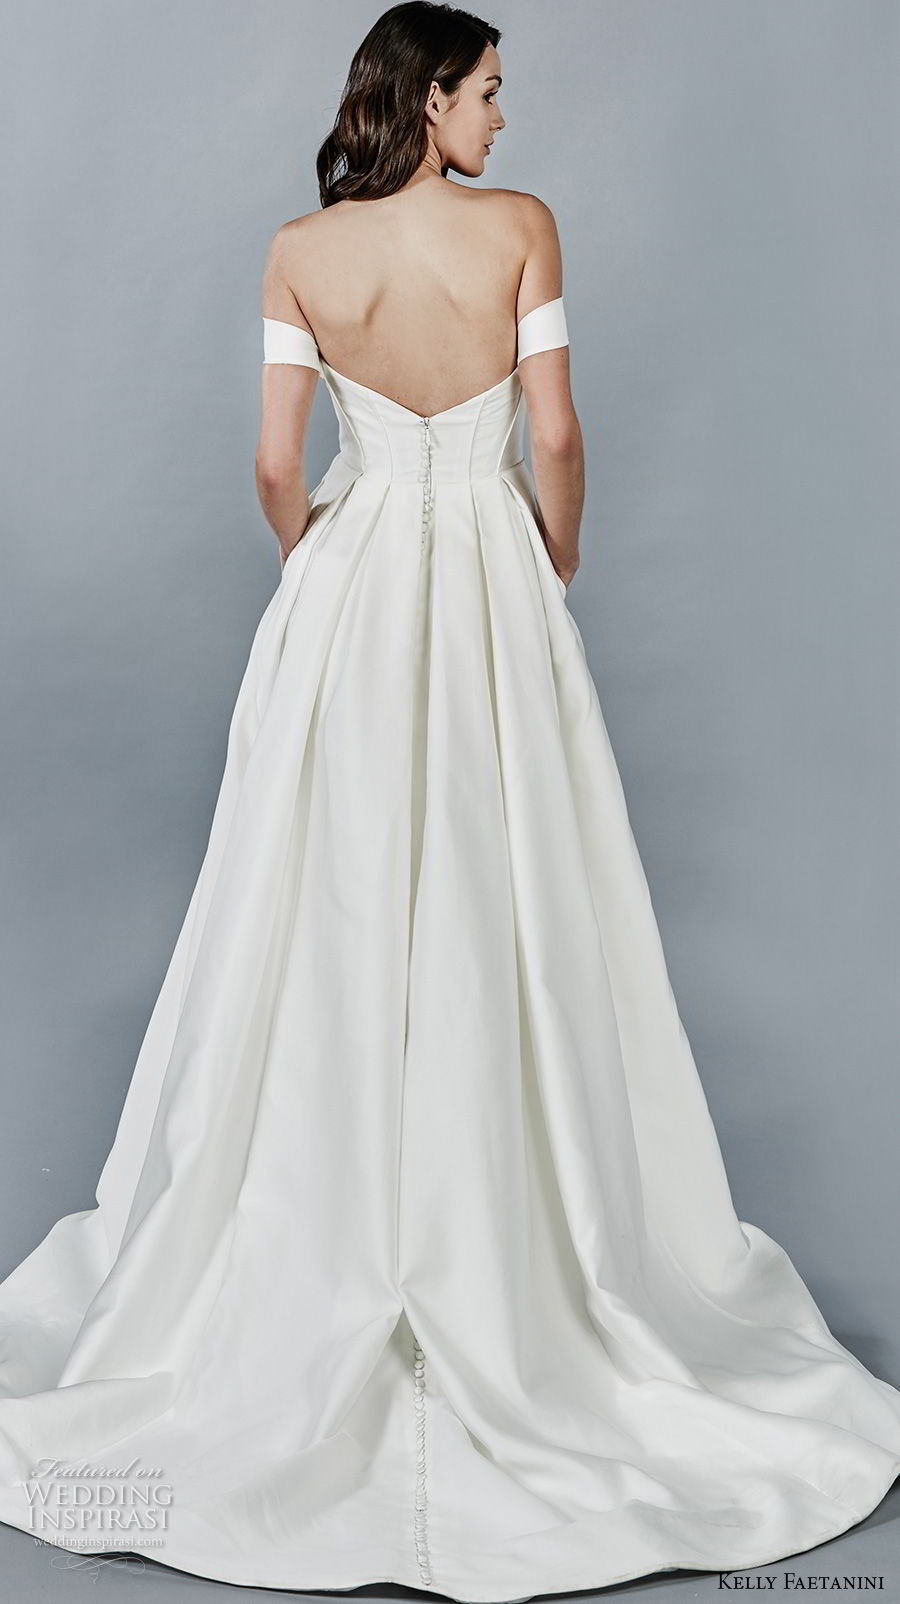 kelly faetanini fall 2018 bridal off the shoulder sweetheart neckline simple clean a line wedding dress open back chapel train (8) bv